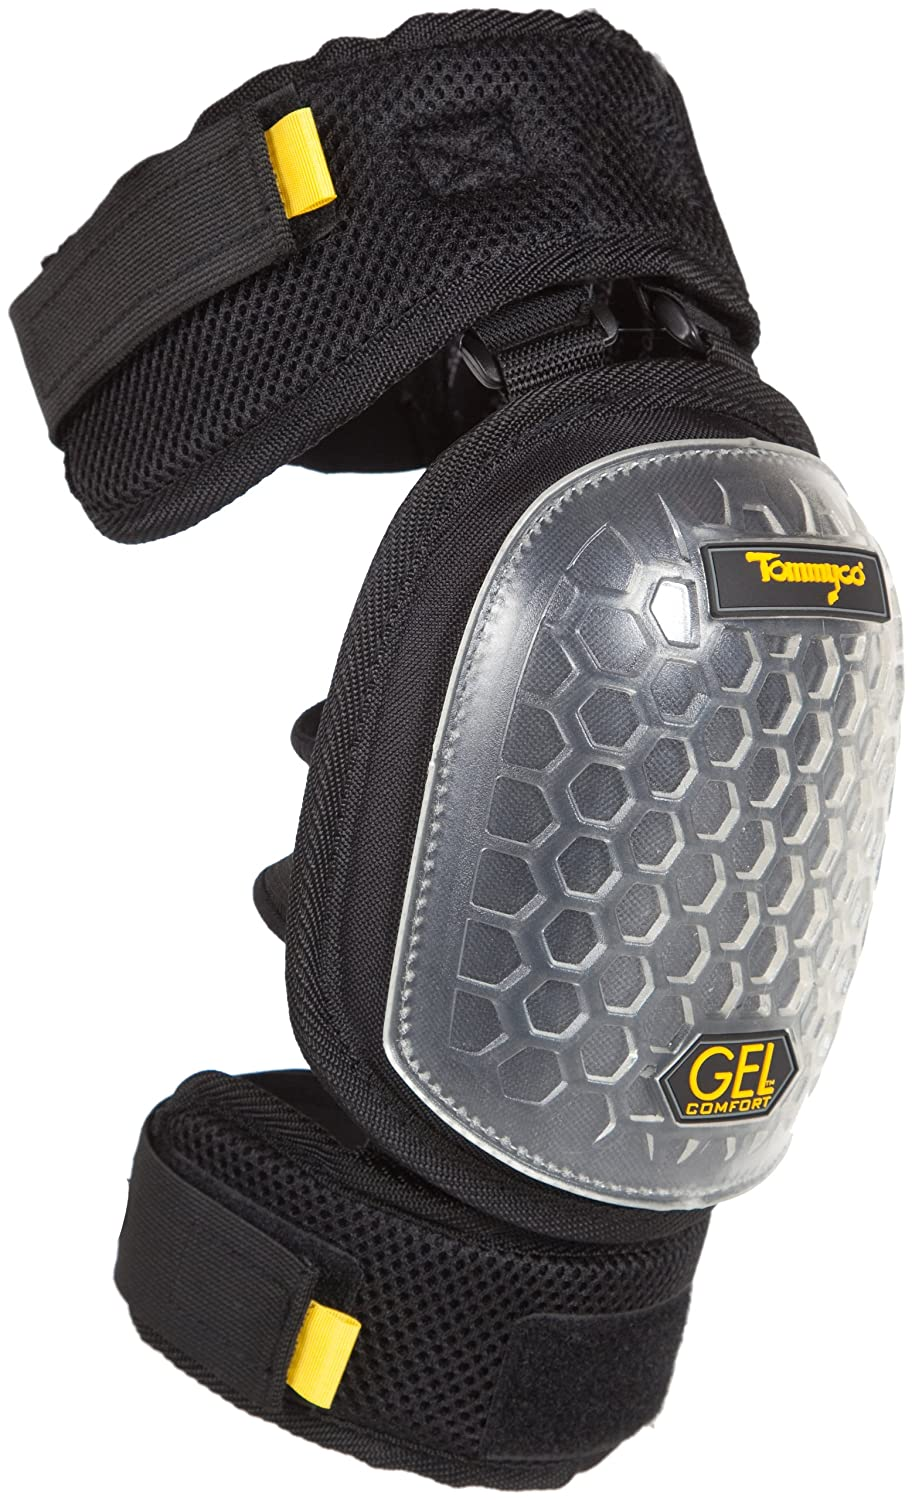 Top 6 Best Tommyco Knee Pads (2020 Reviews & Buying Guide) 1